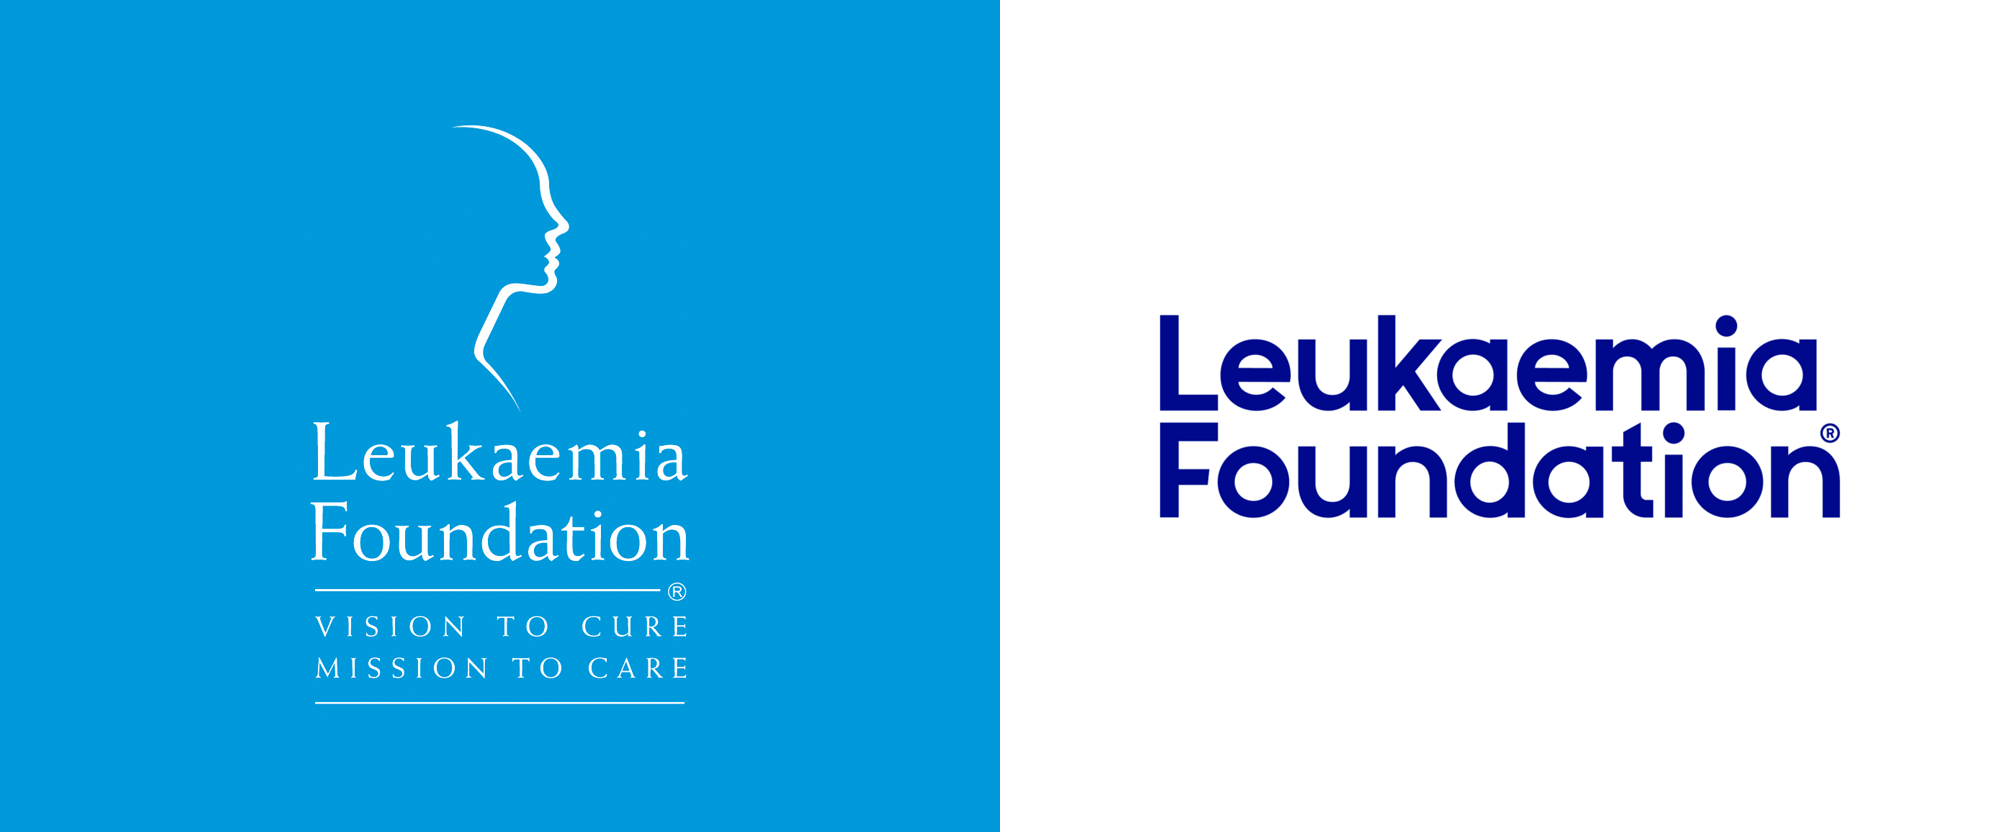 New Logo for Leukaemia Foundation by KOJO